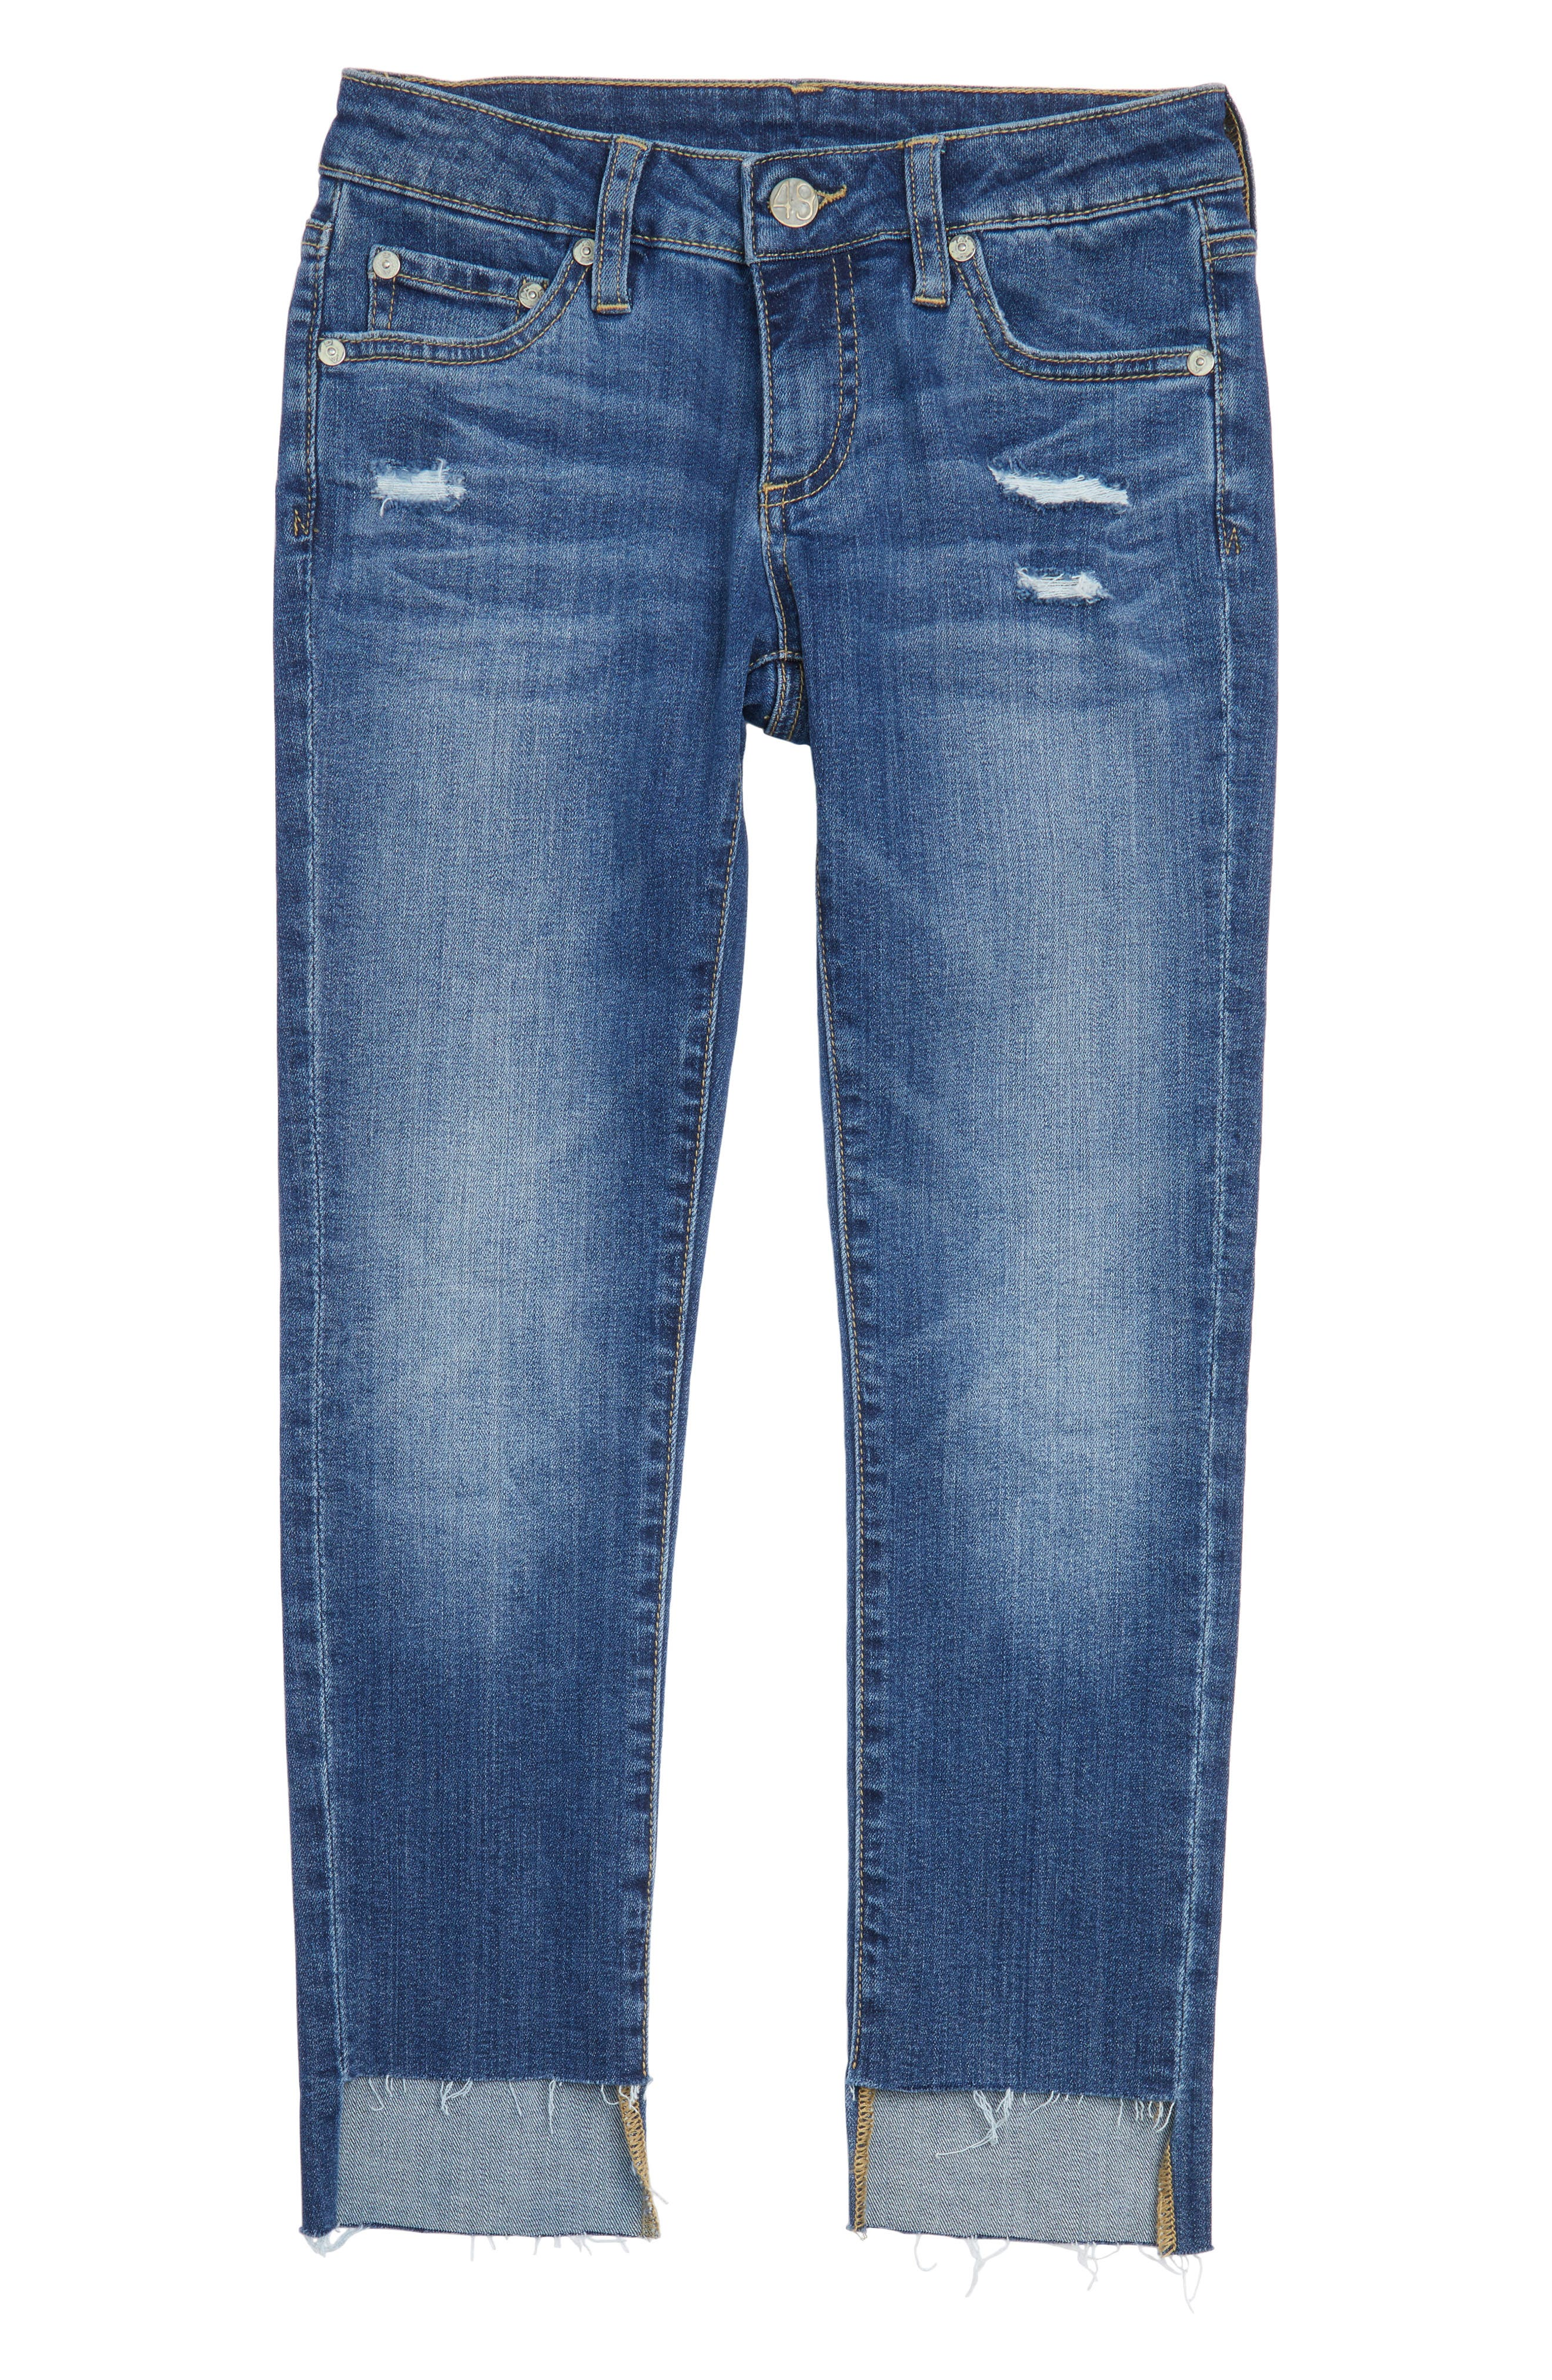 Alternate Image 1 Selected - ag adriano goldschmied kids The Kate Slim Straight Leg Jeans (Big Girls)